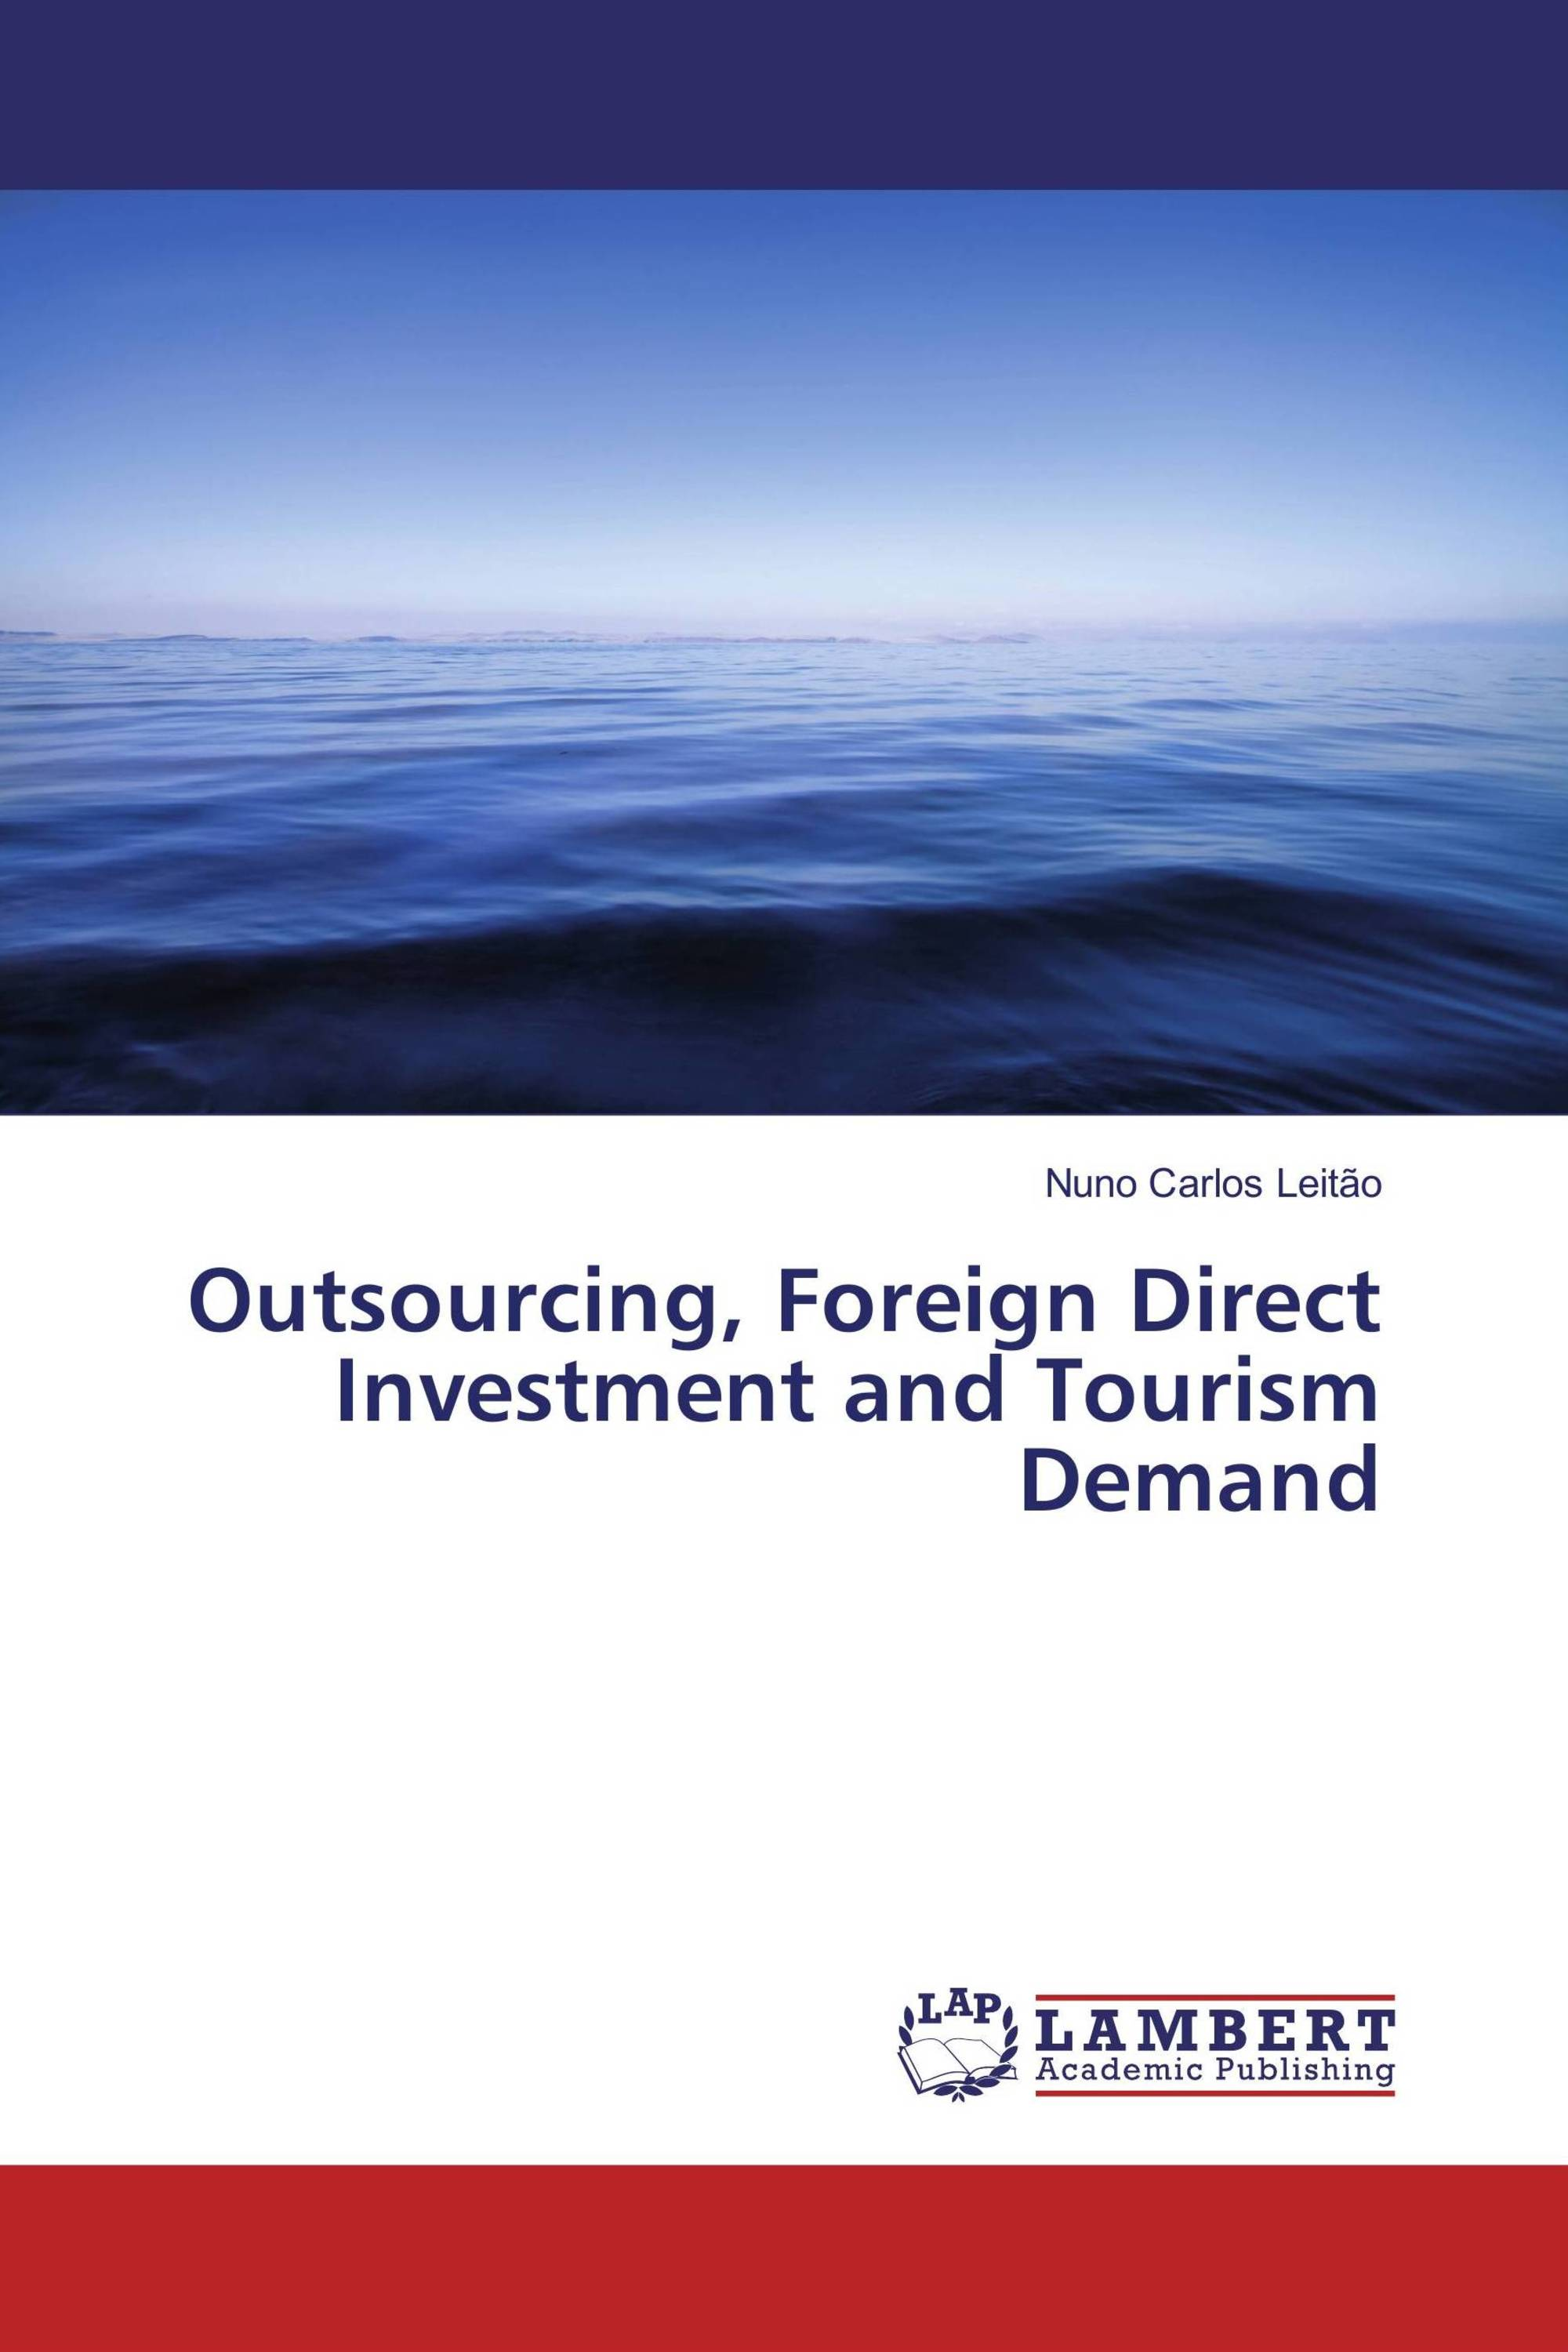 fdi and outsourcing Outsourcing vs foreign direct investment (fdi) given that outsourcing is a viable alternative to foreign direct investment (fdi), what issues should be considered before a firm decides between the two.